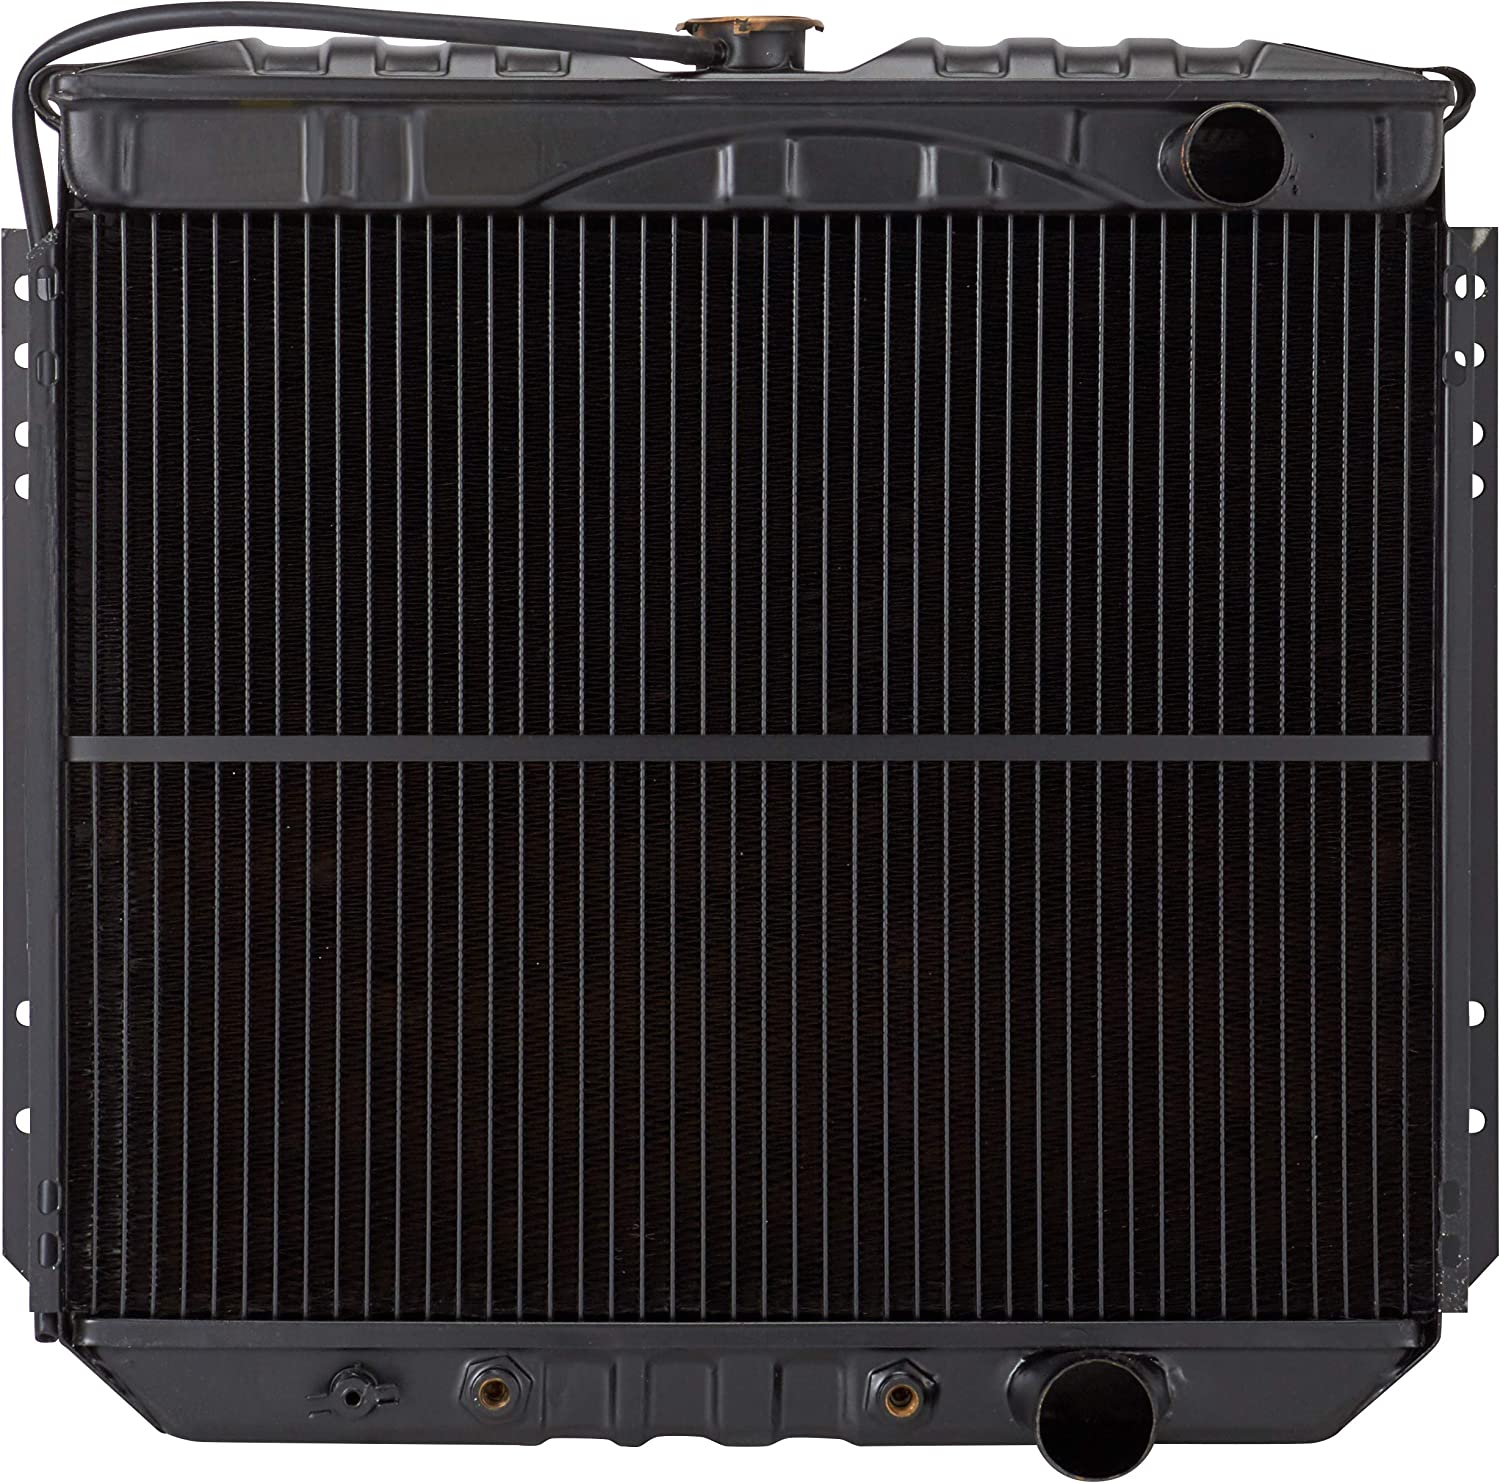 Spectra Premium CU340 Complete Radiator for Ford/Mercury